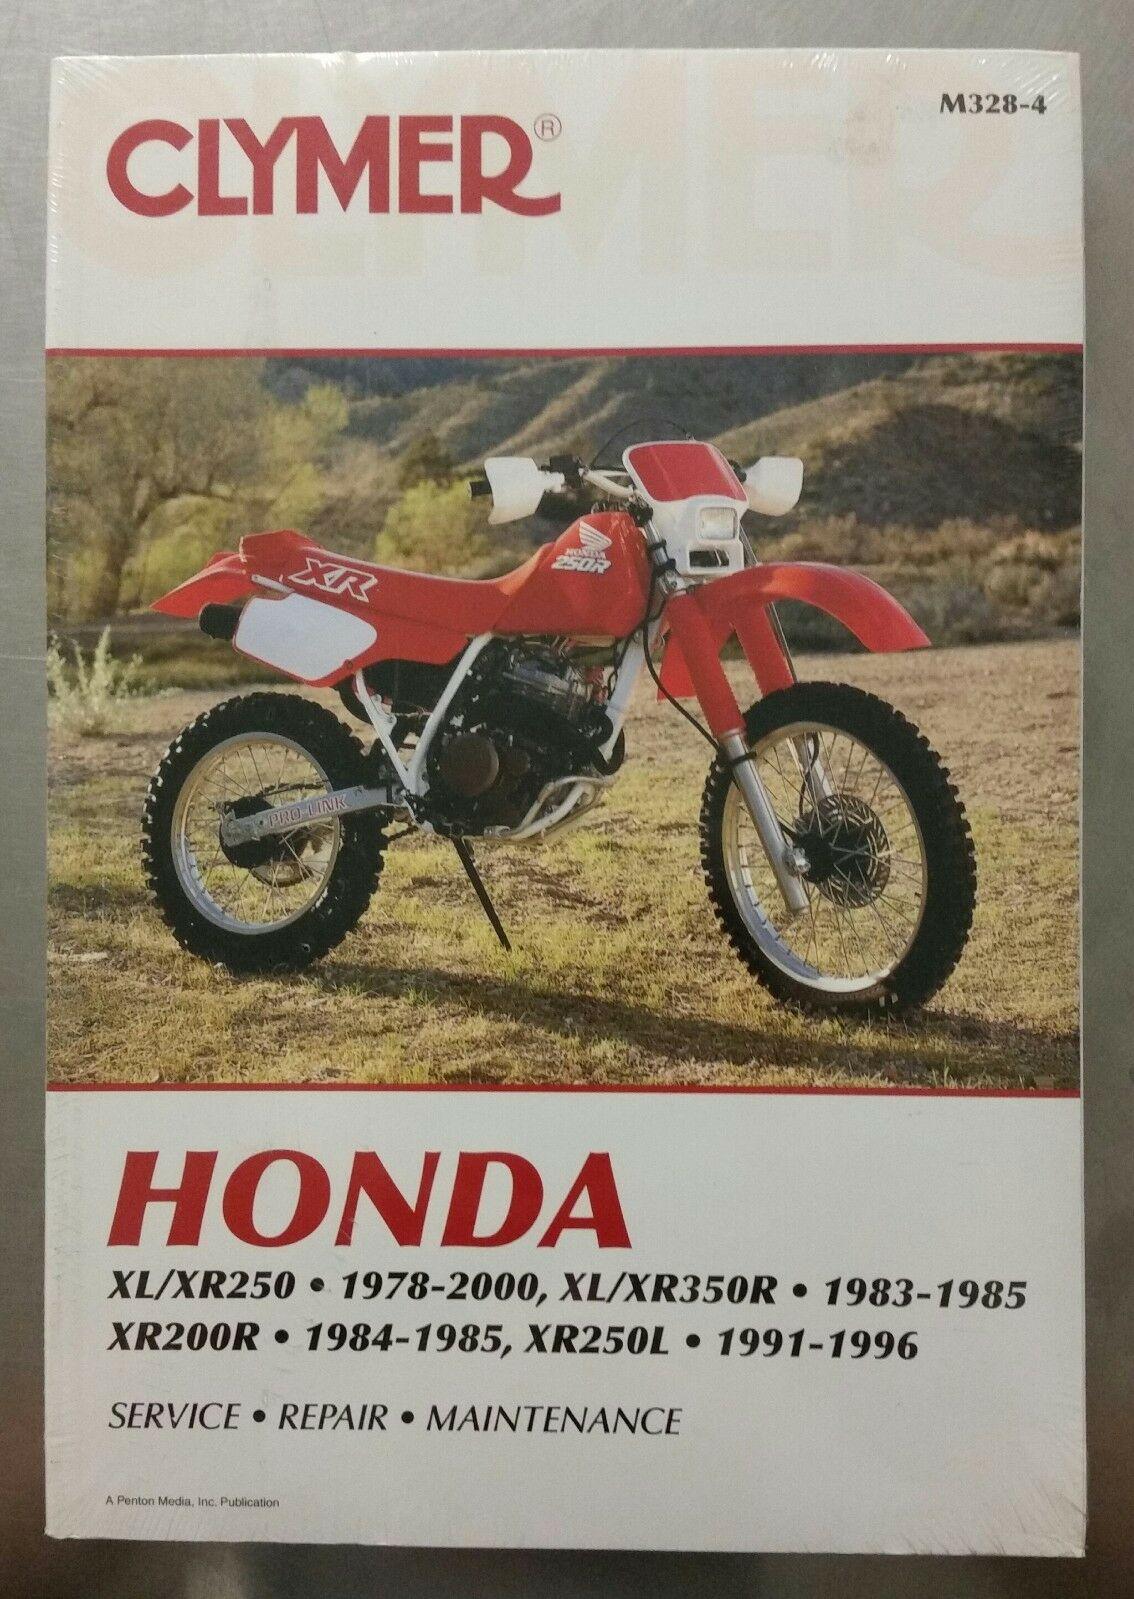 *Clymer Service / Repair Manual for Honda XL/XR250-350, XR200R, 1 of 1Only  1 available See More